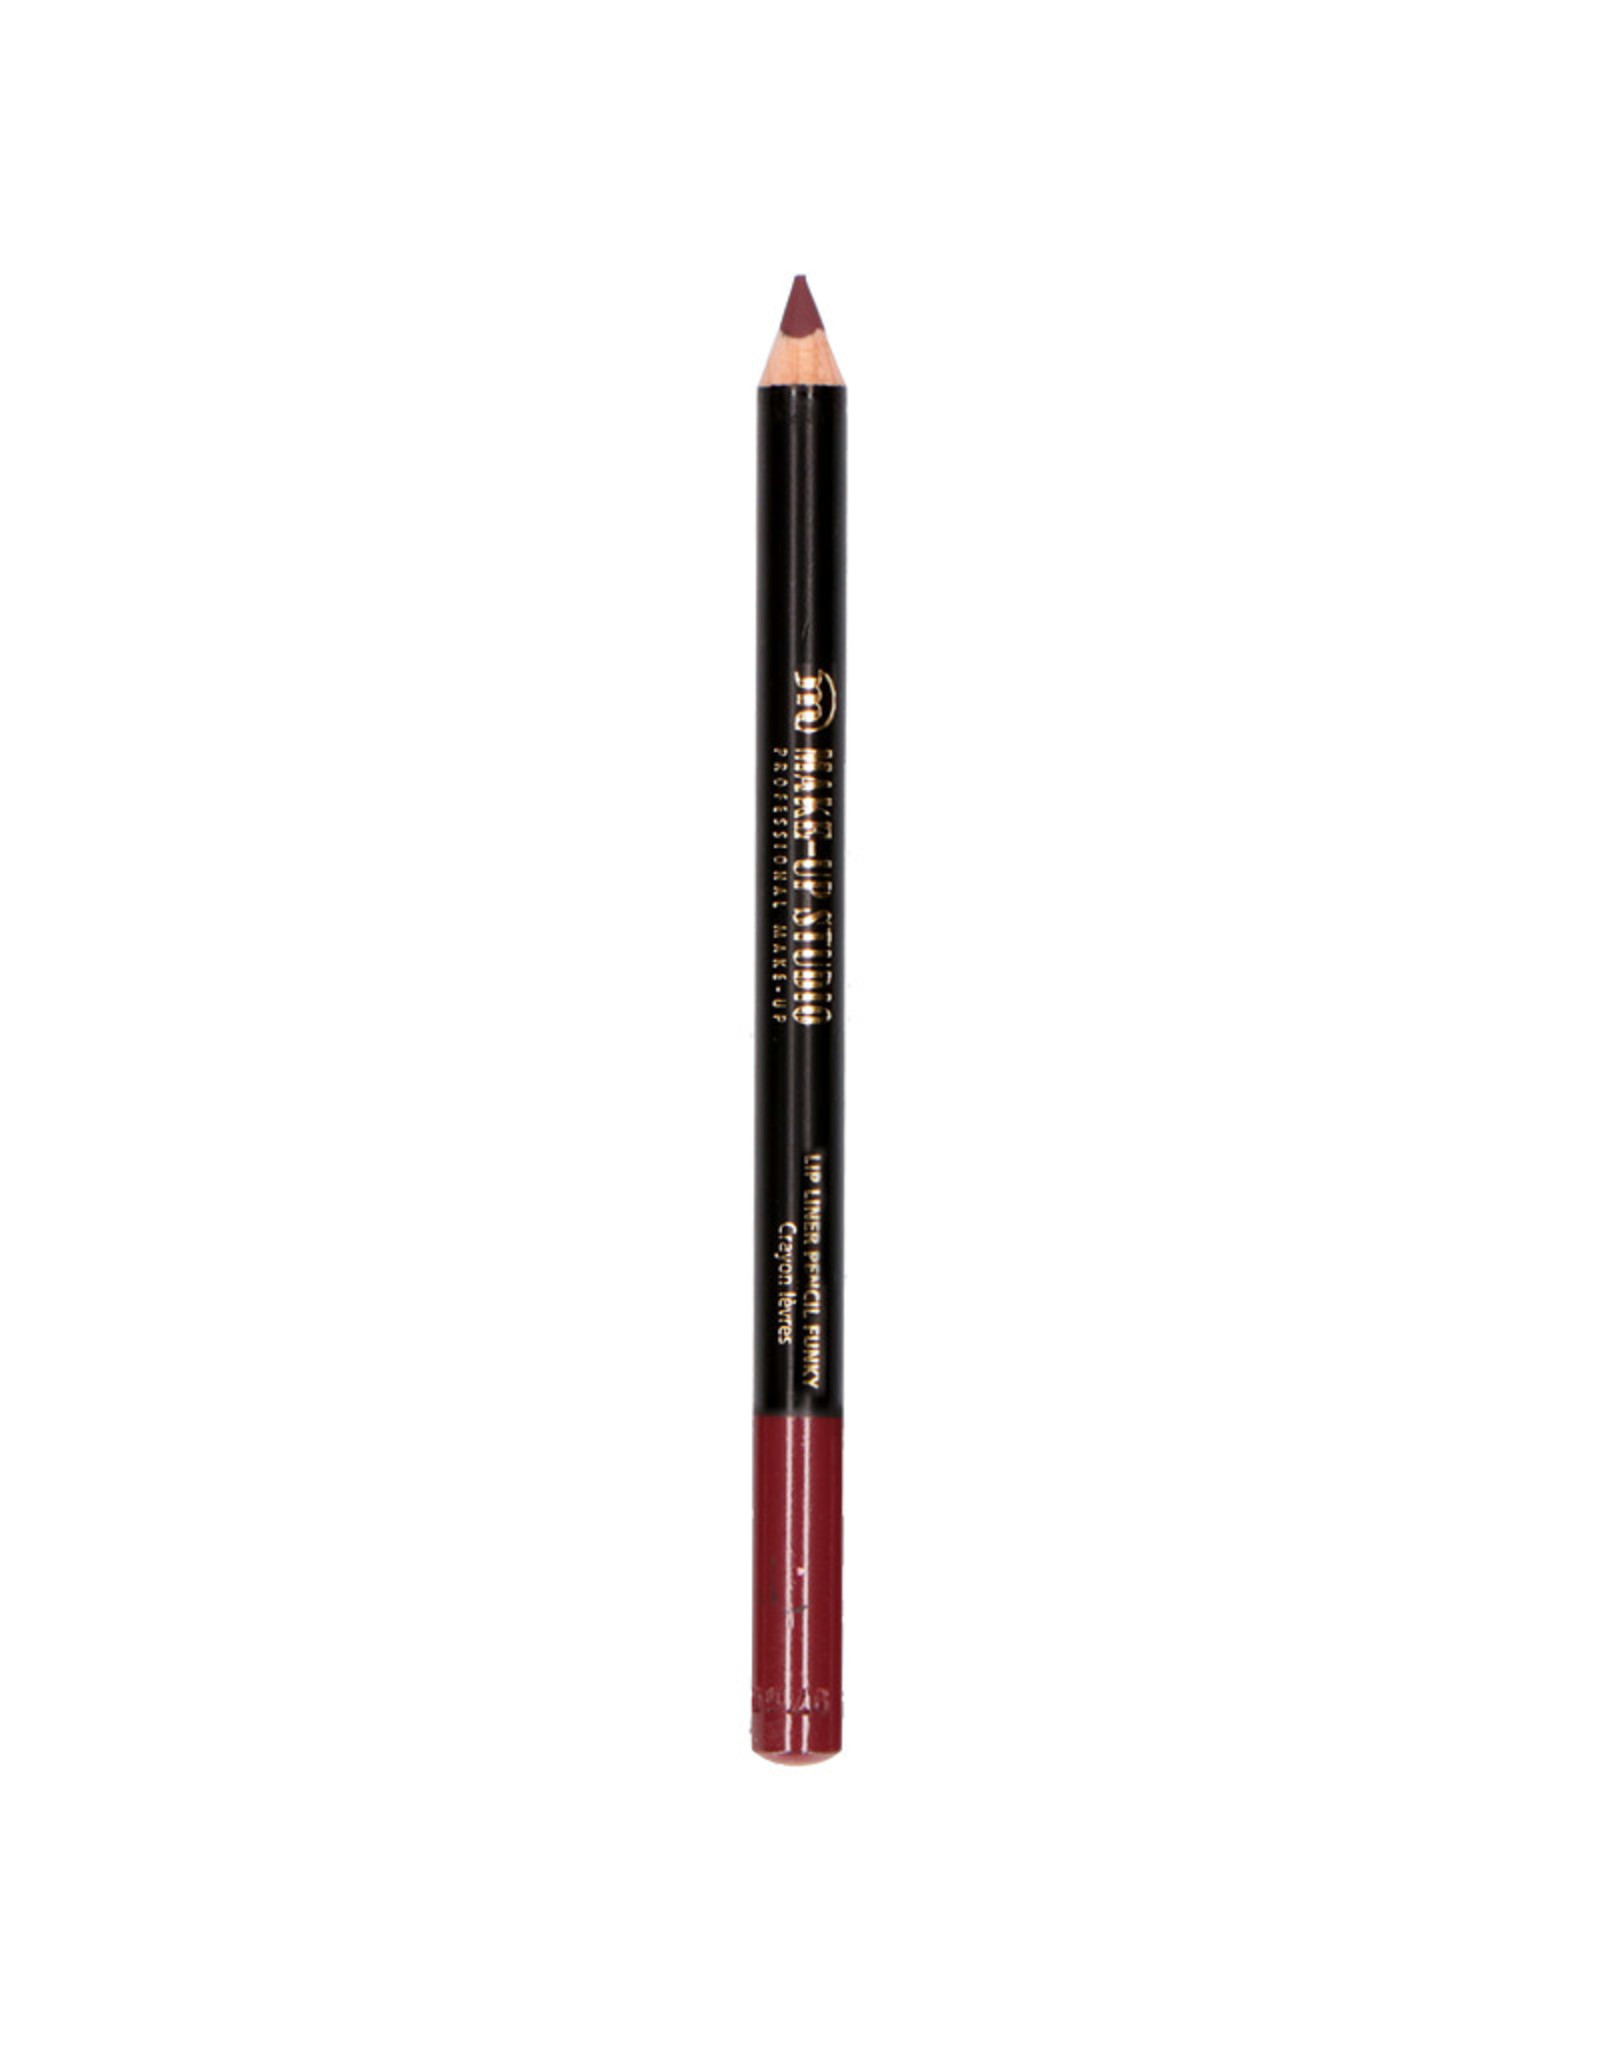 MAKE-UP STUDIO LIP LINER PENCIL 11